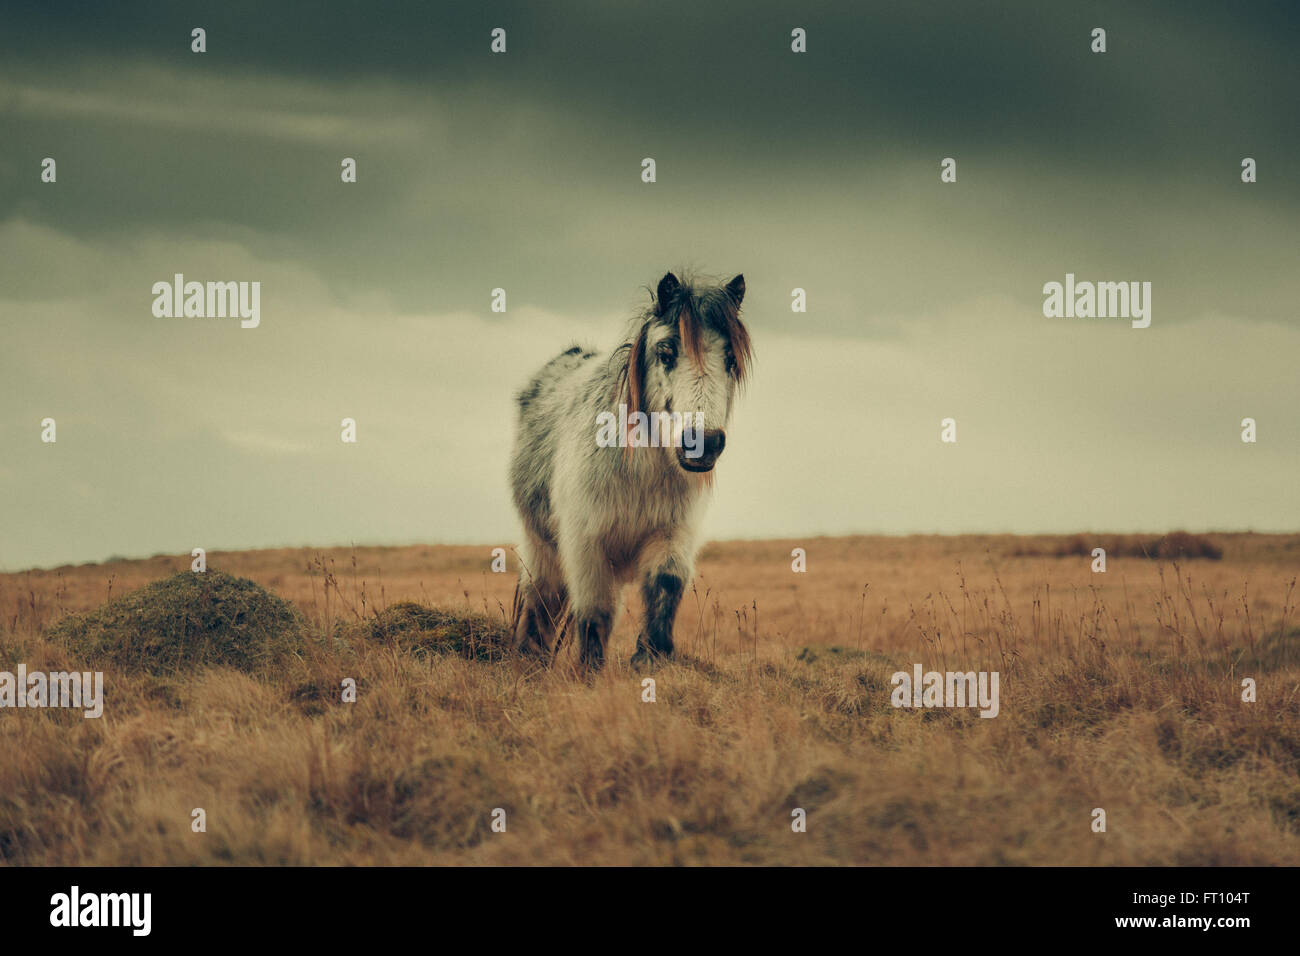 Horse at Brecon Beacons Wales Stock Photo